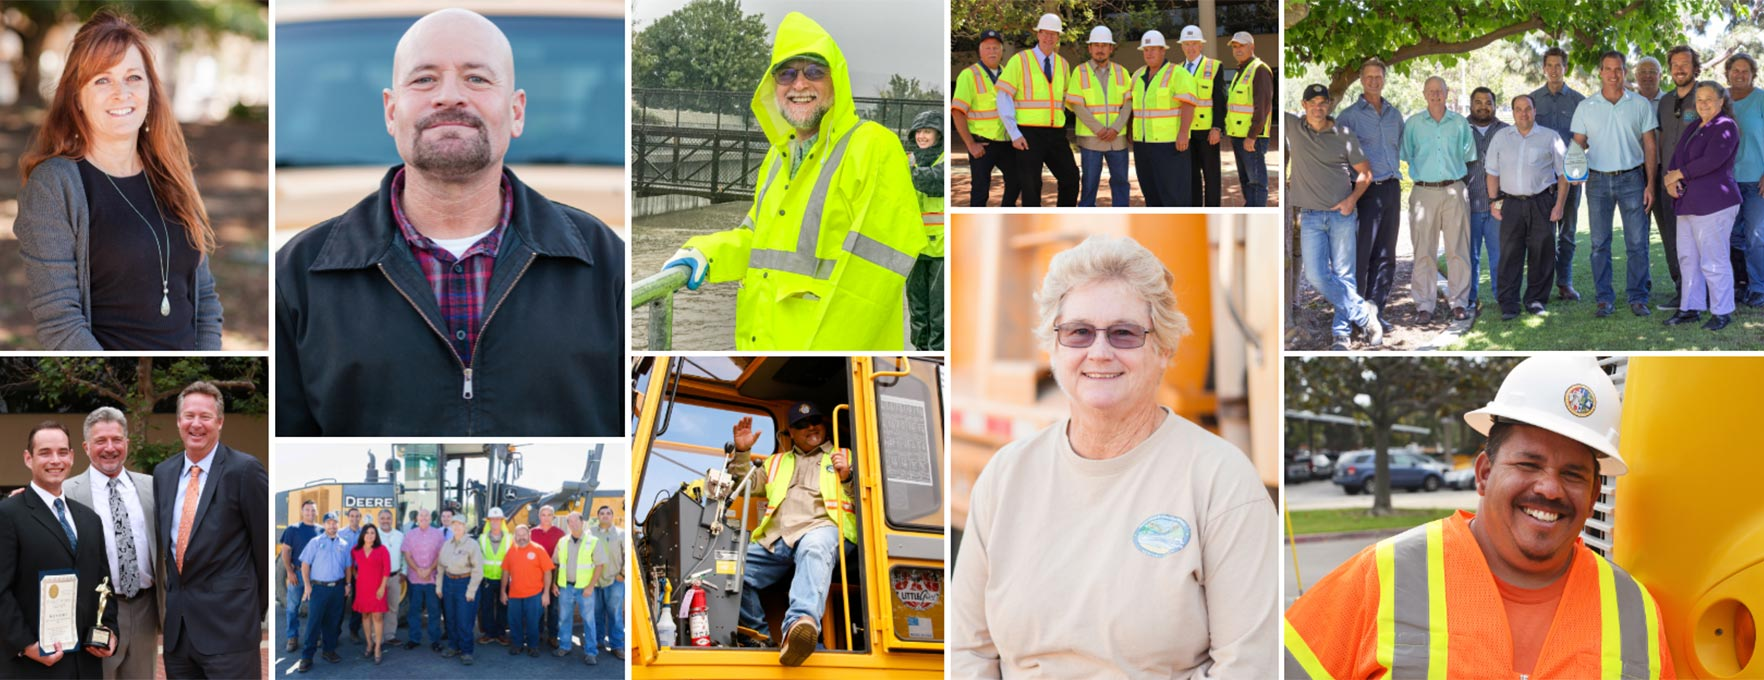 VCPWA-The-Works-People-of-Public-Works-header